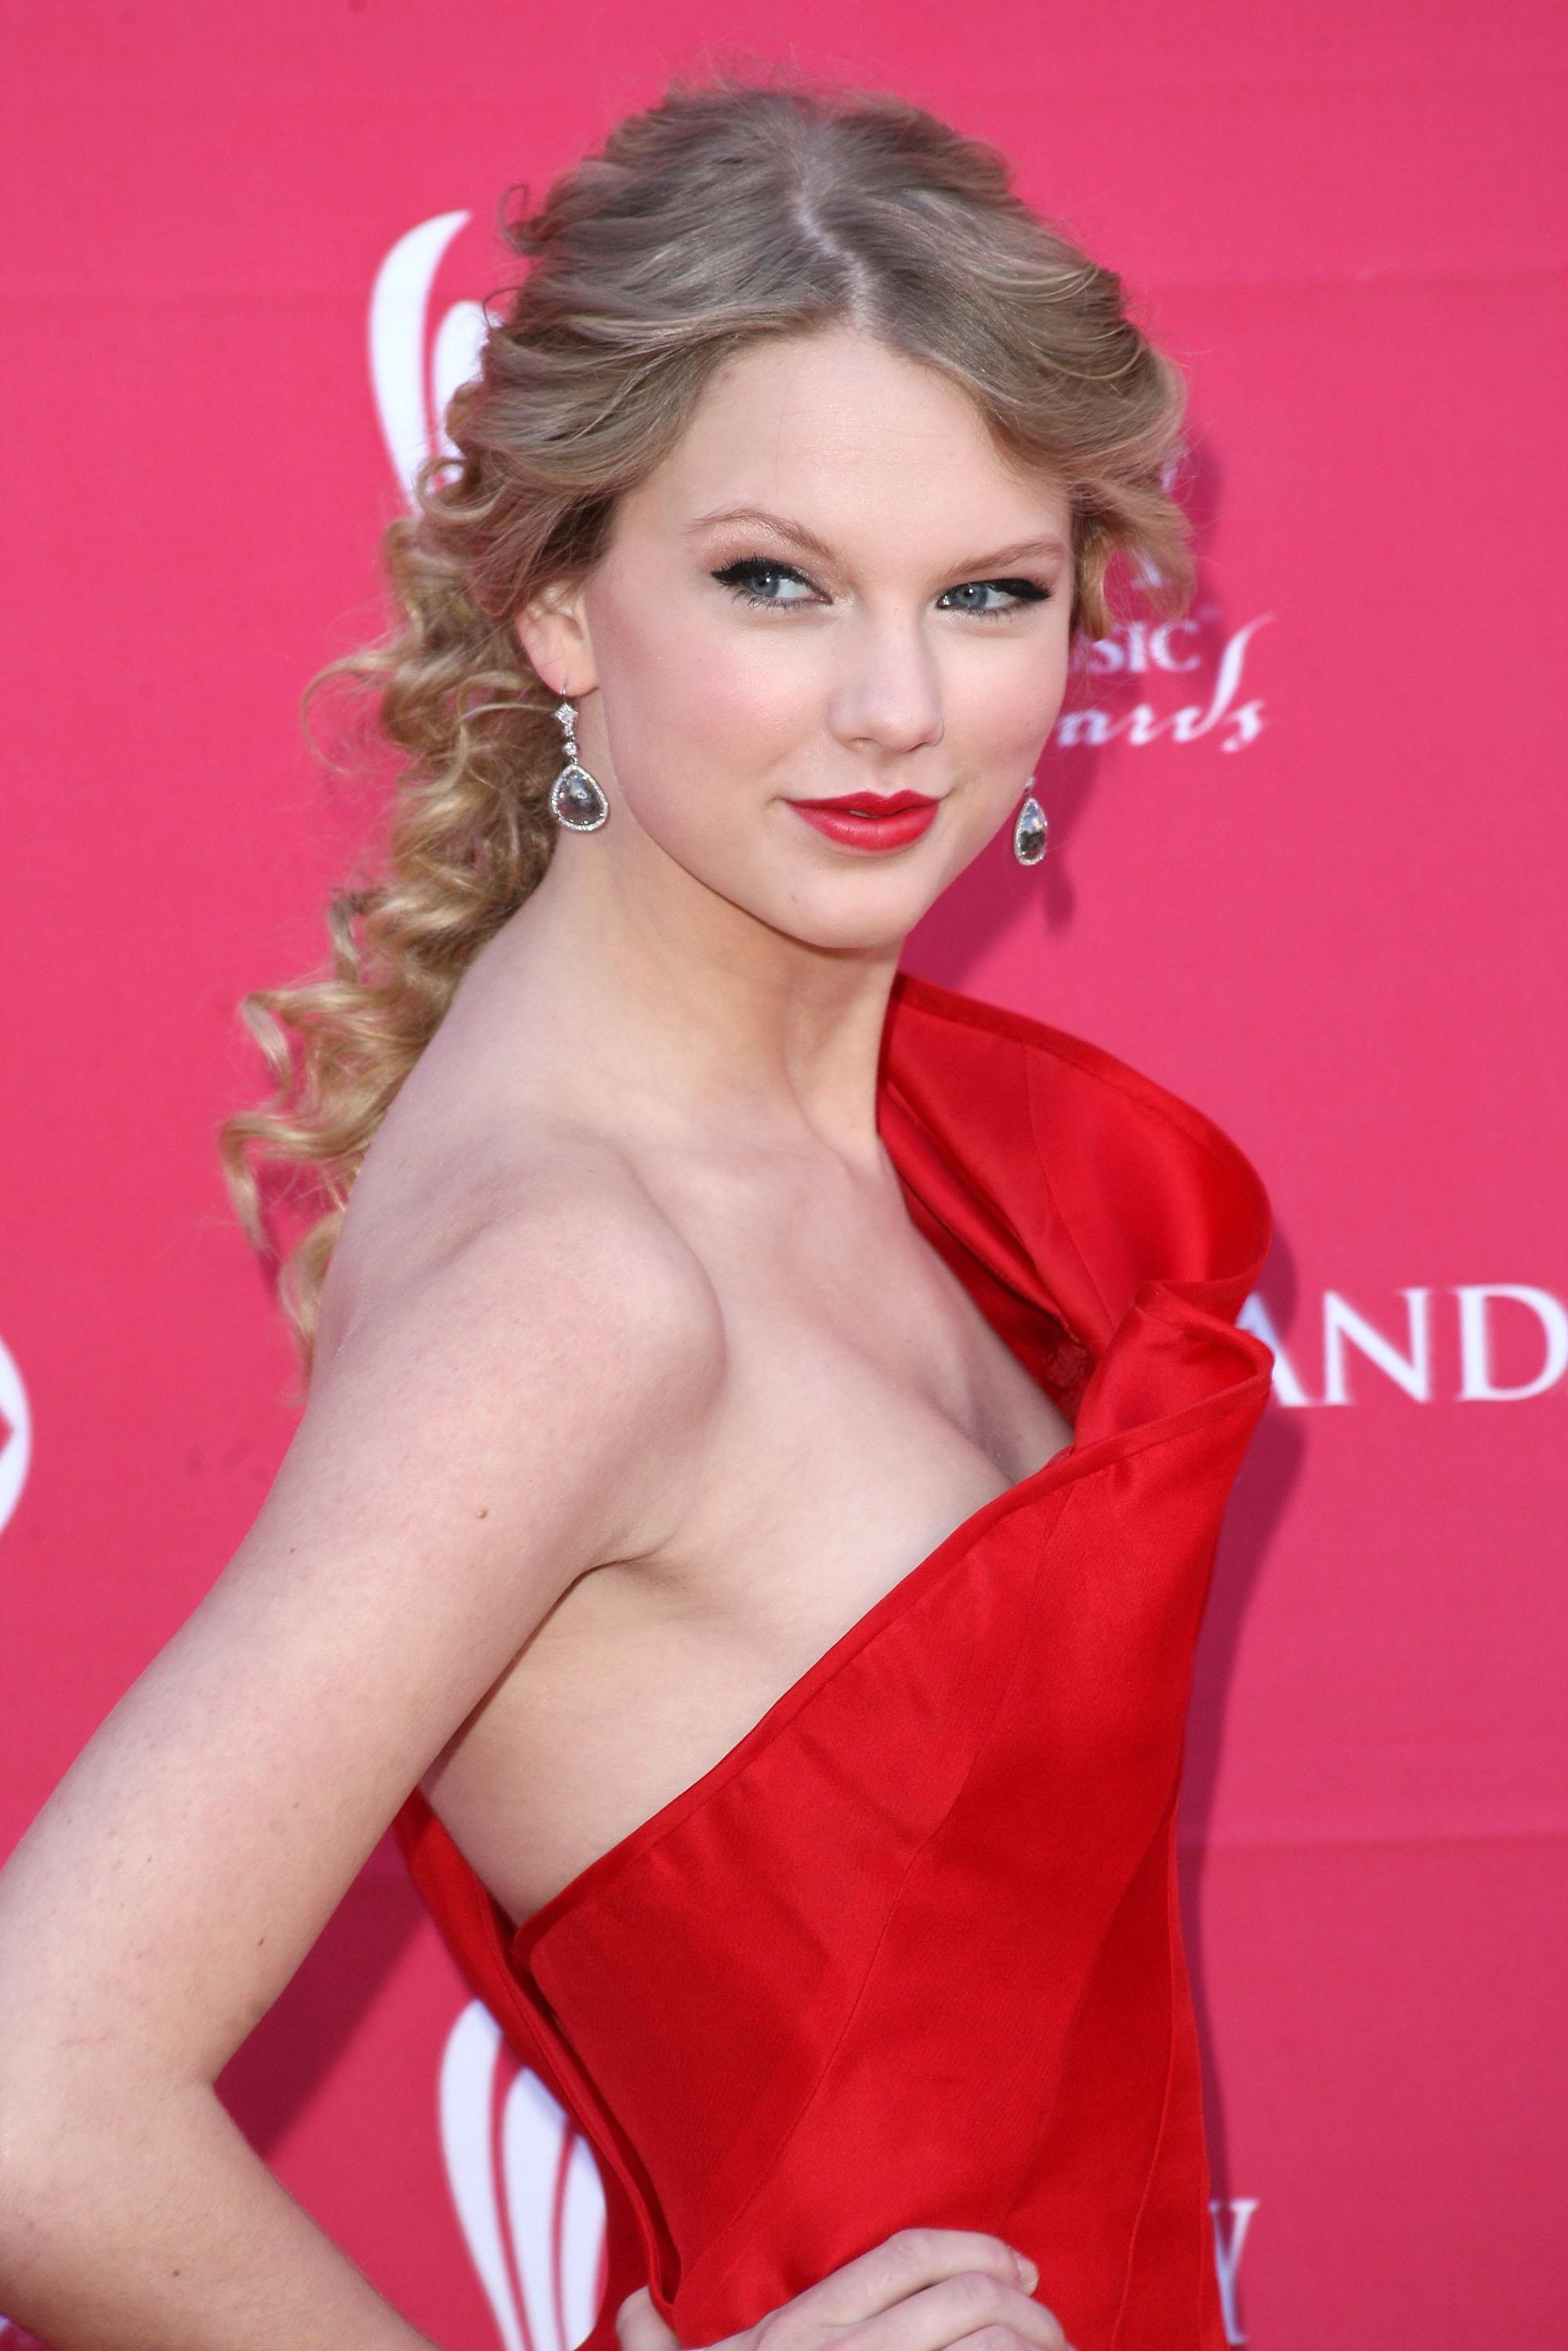 Taylor Swift Nude - Page 17 Pictures, Naked, Oops, Topless, Bikini, Video, Nipple-2655